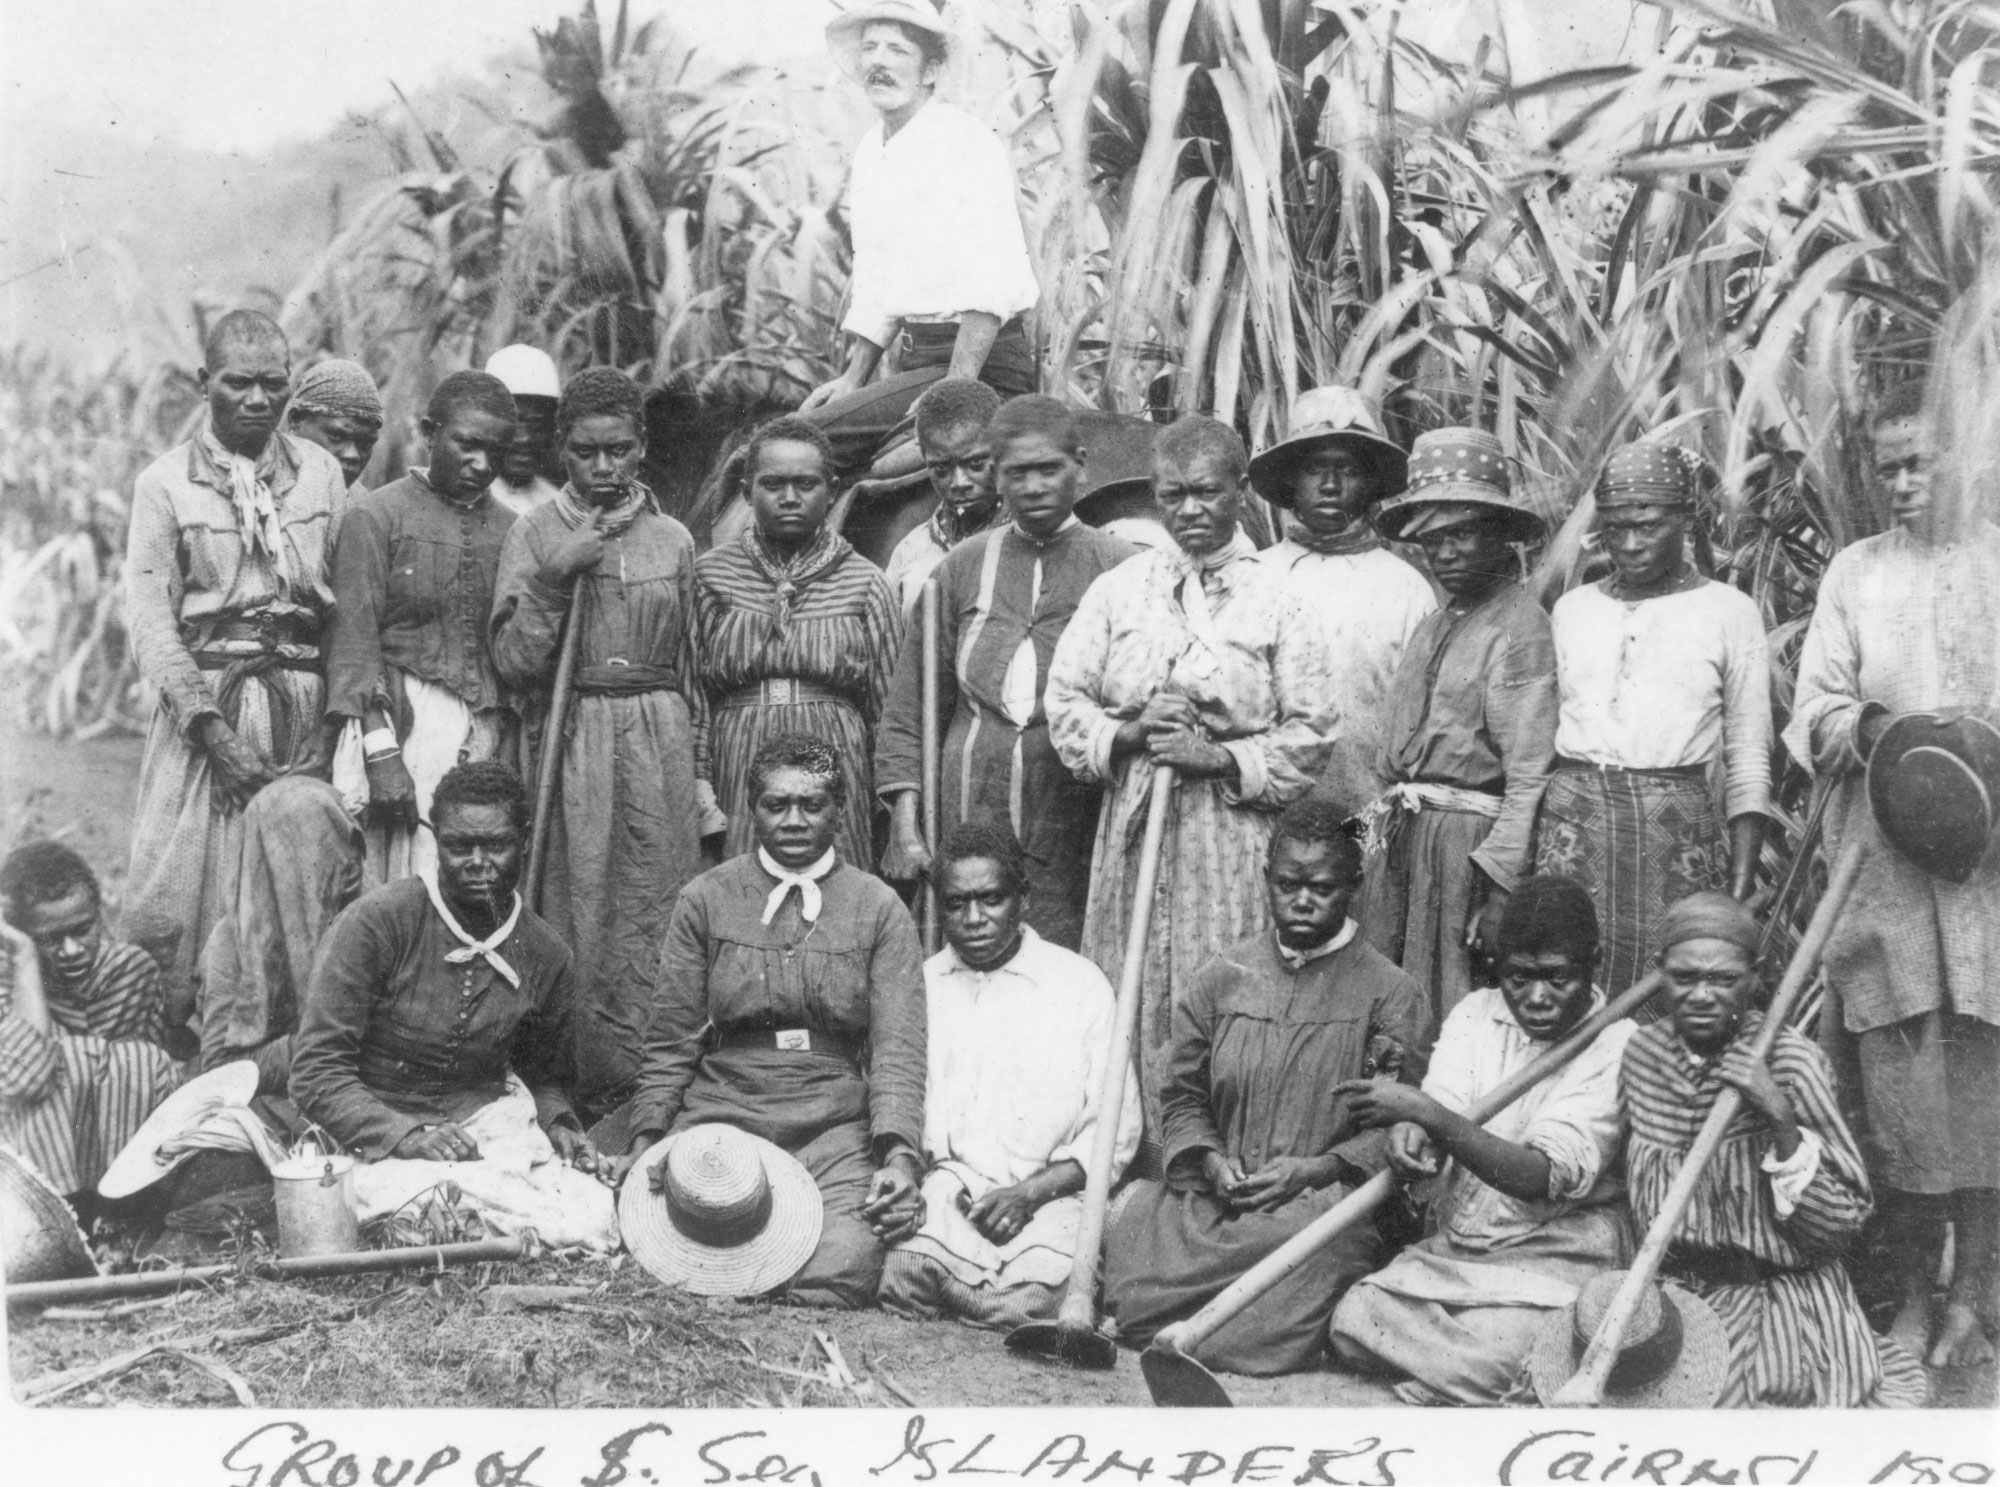 Group of Australian South Sea Islander women labourers on a sugar cane plantation near Cairns, Queensland, about 1895.